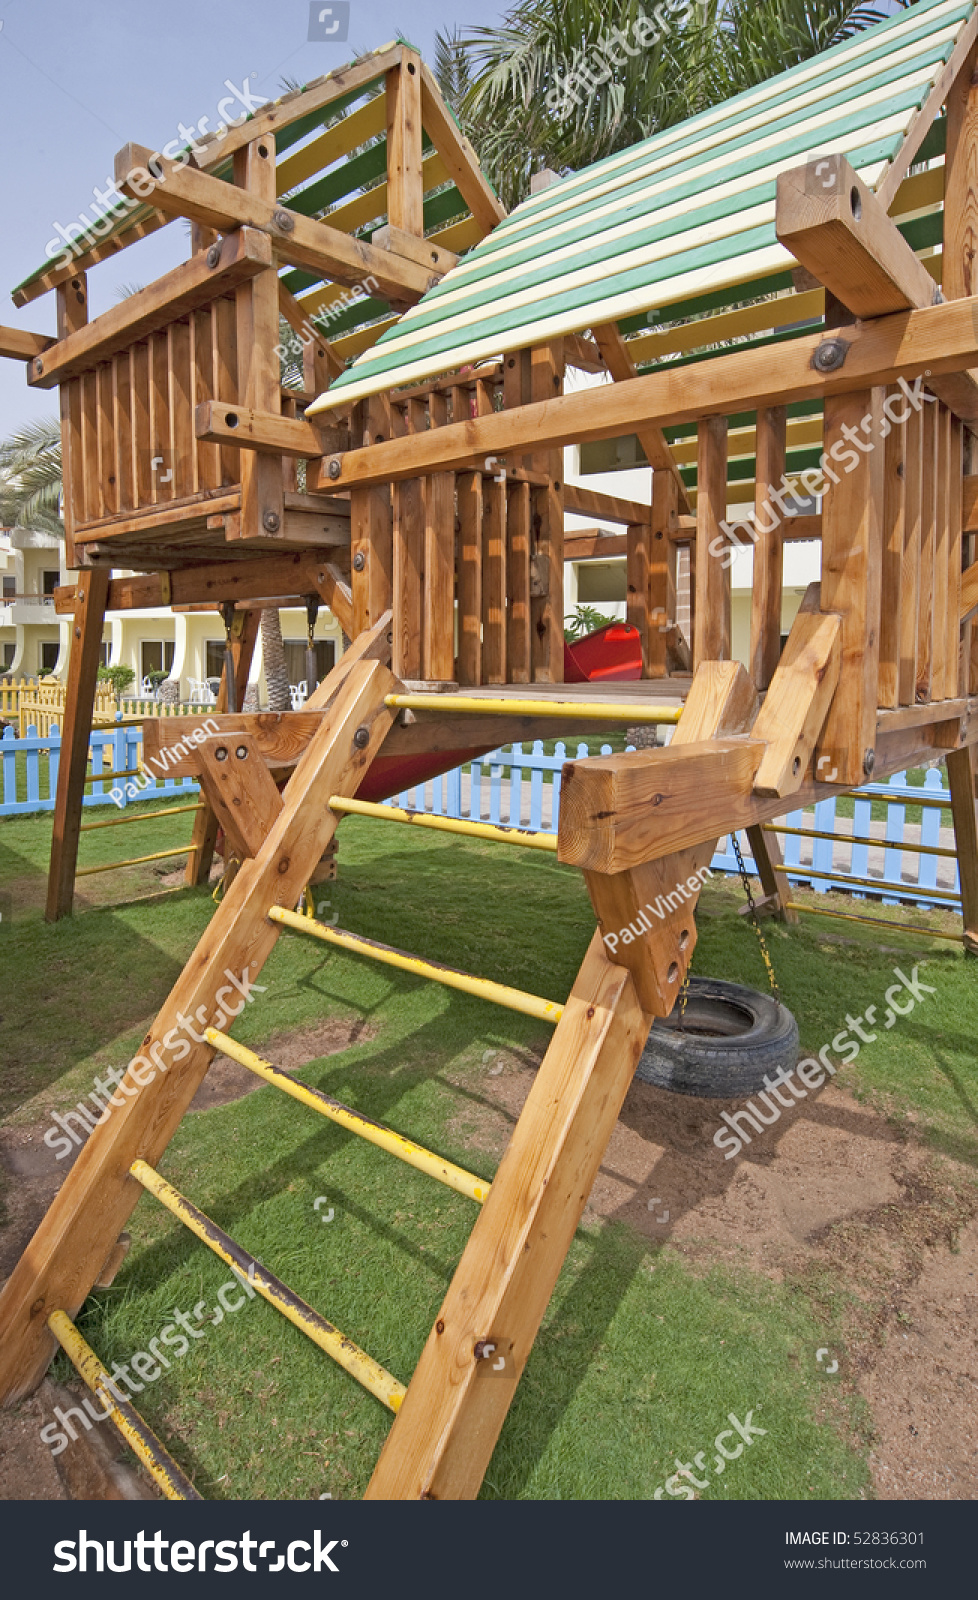 childrens climbing frame play area stock photo 52836301 shutterstock